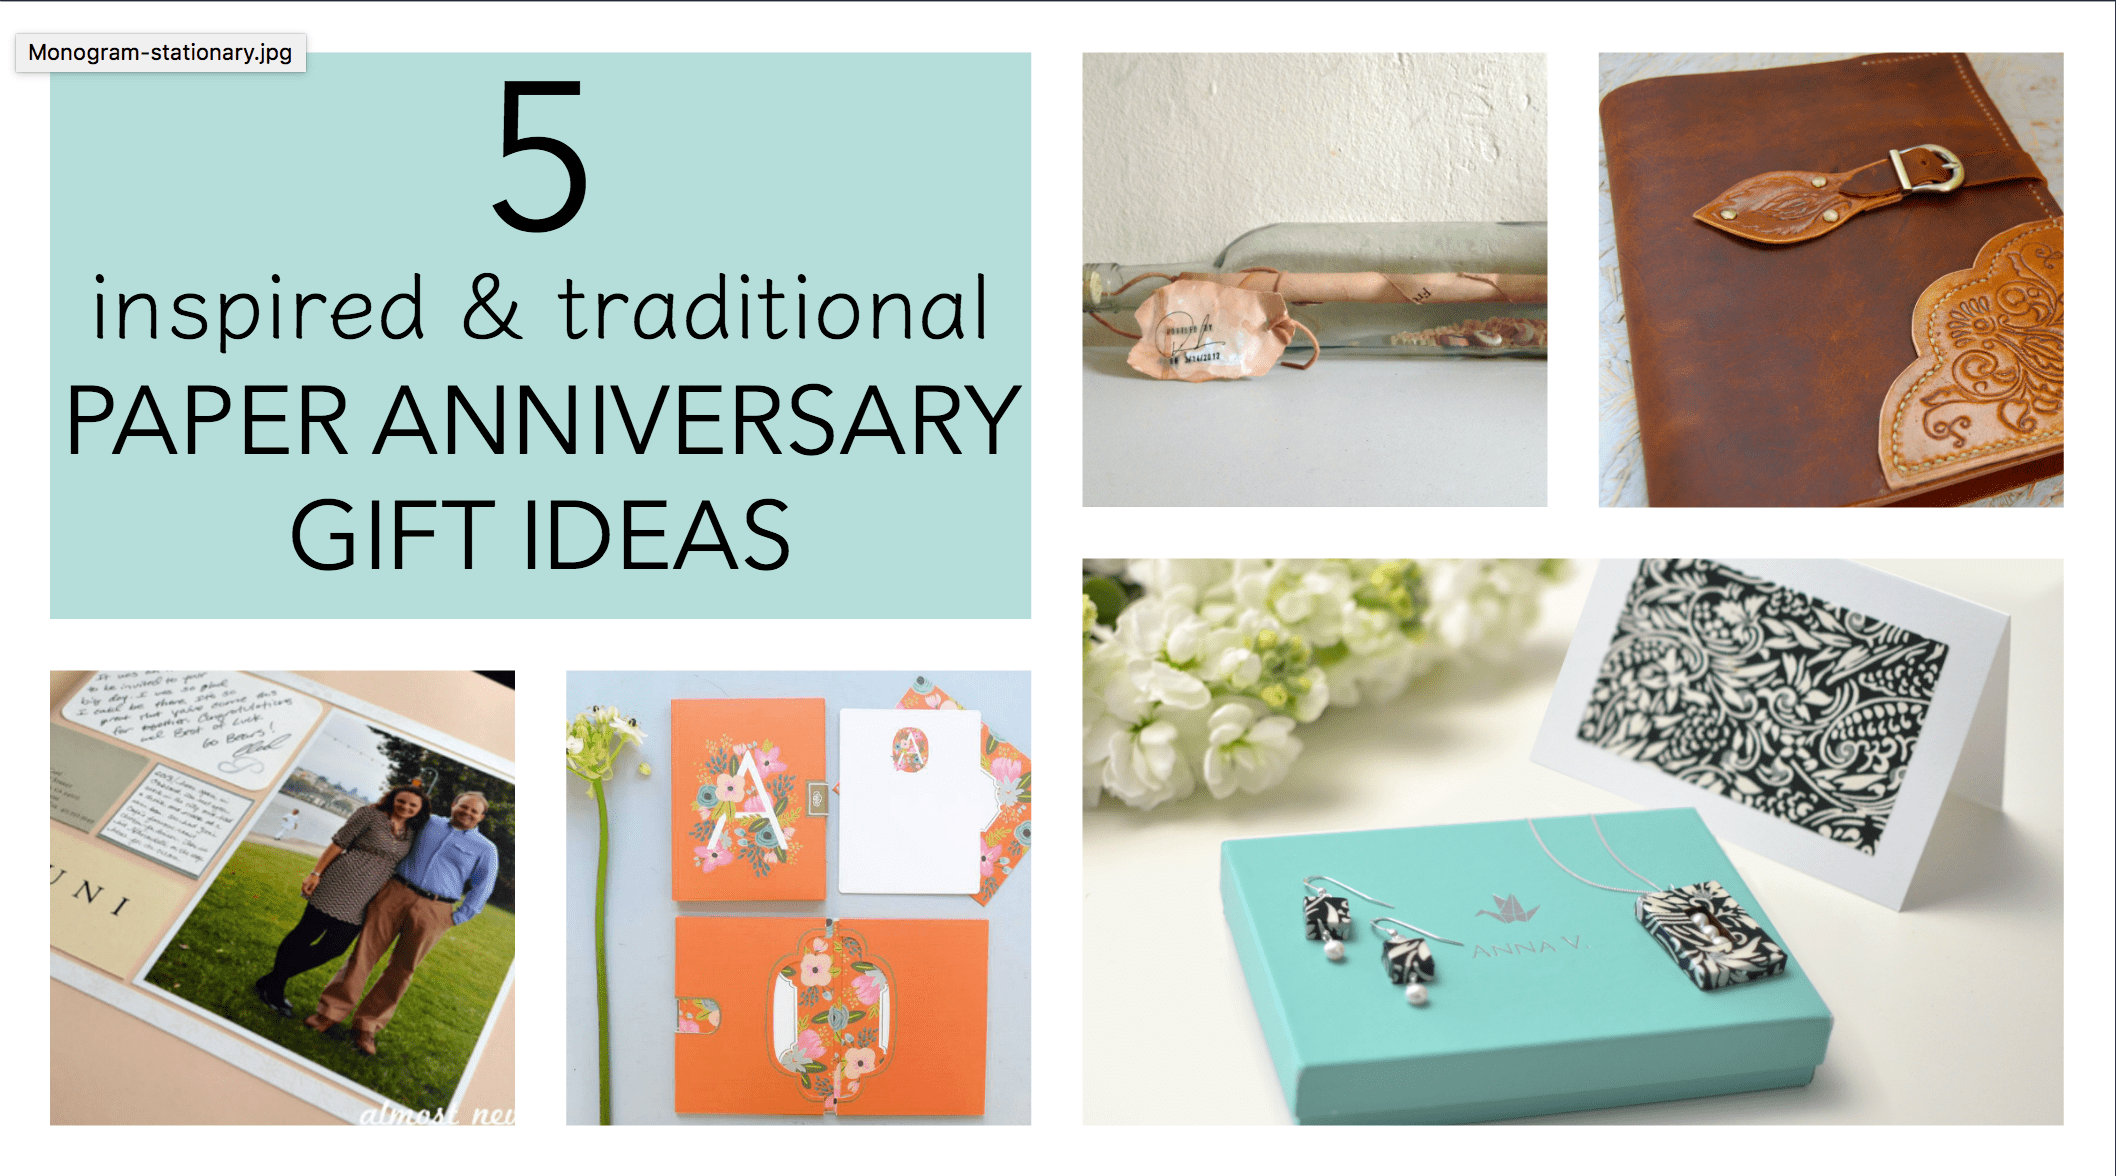 5 traditional paper anniversary gift ideas for her first wedding anniversary gift 5 Traditional Paper Anniversary Gift Ideas for Her